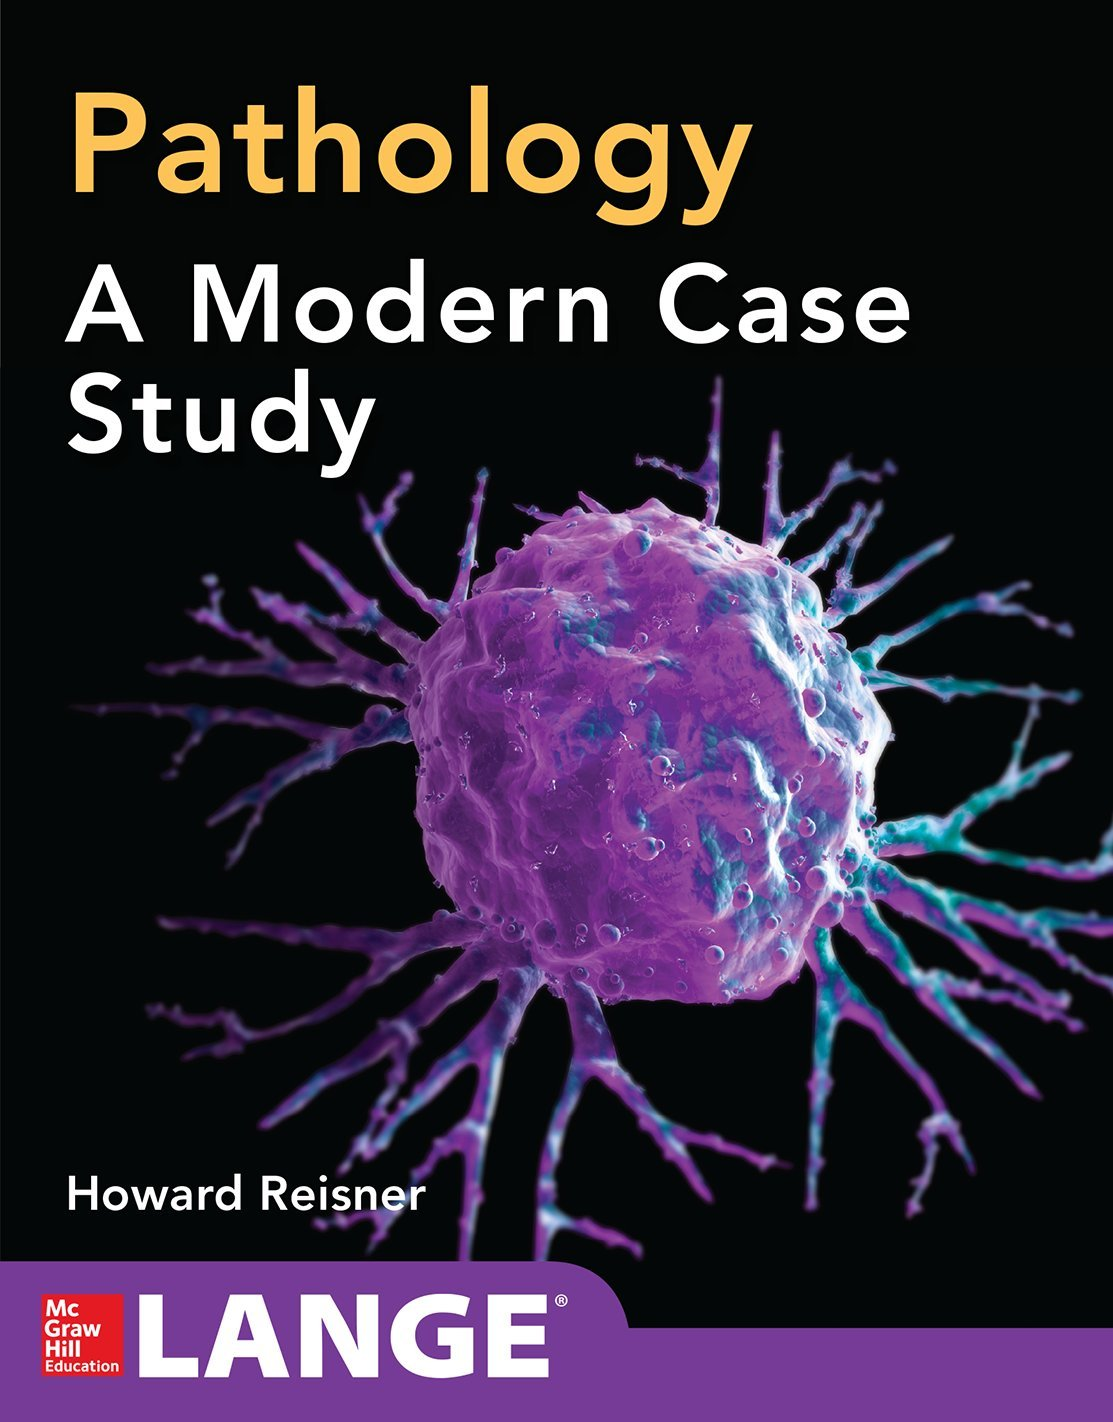 pathology case studies book Study with anatomic and clinical pathology board review questions with expansive explanations to prepare for the pathology board exam - over 1000 active questions.